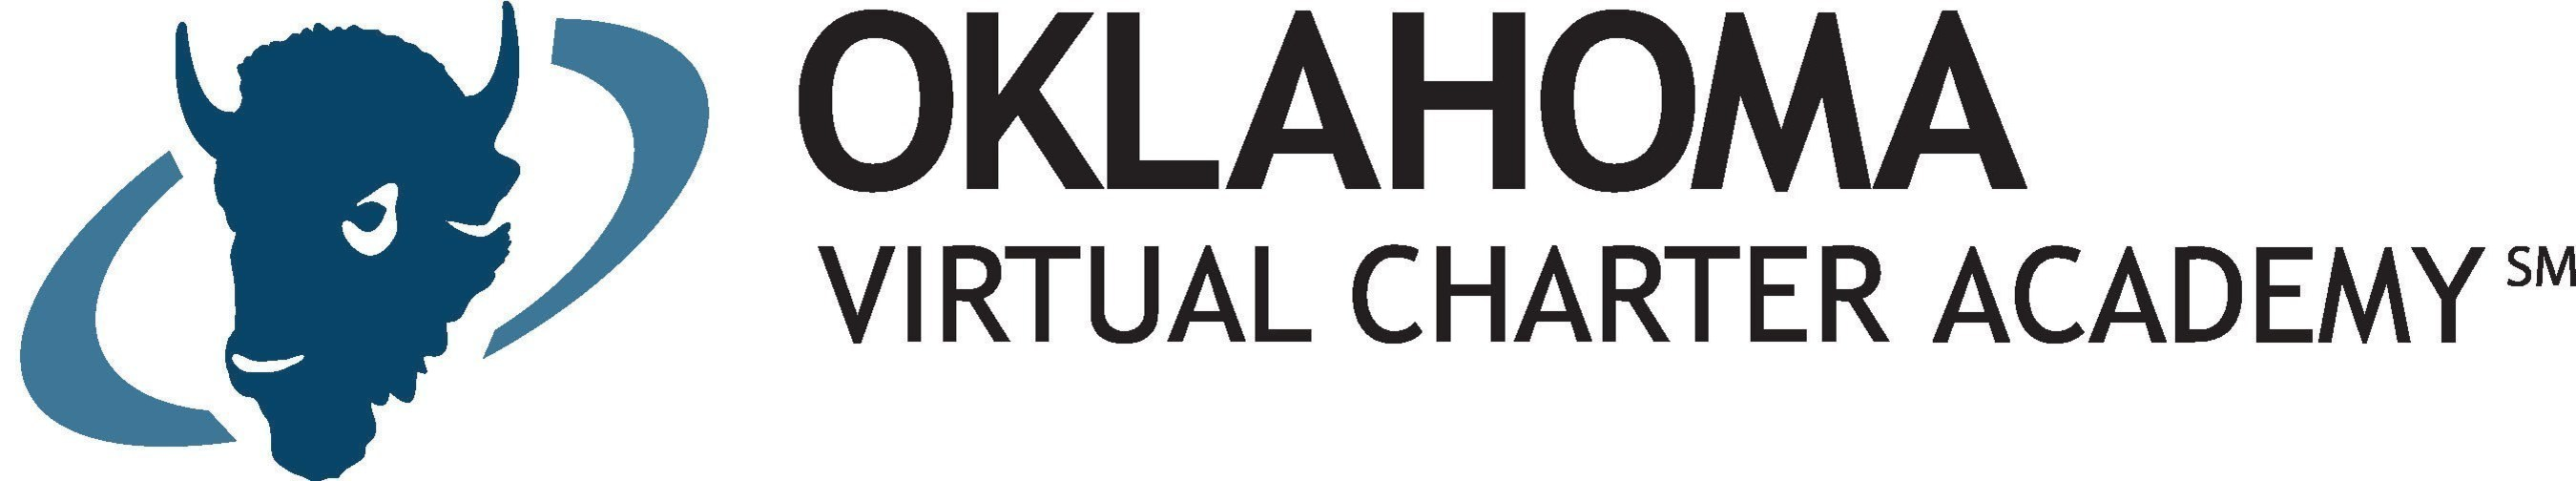 Oklahoma Virtual Charter Academy to host in-person graduation on May 30